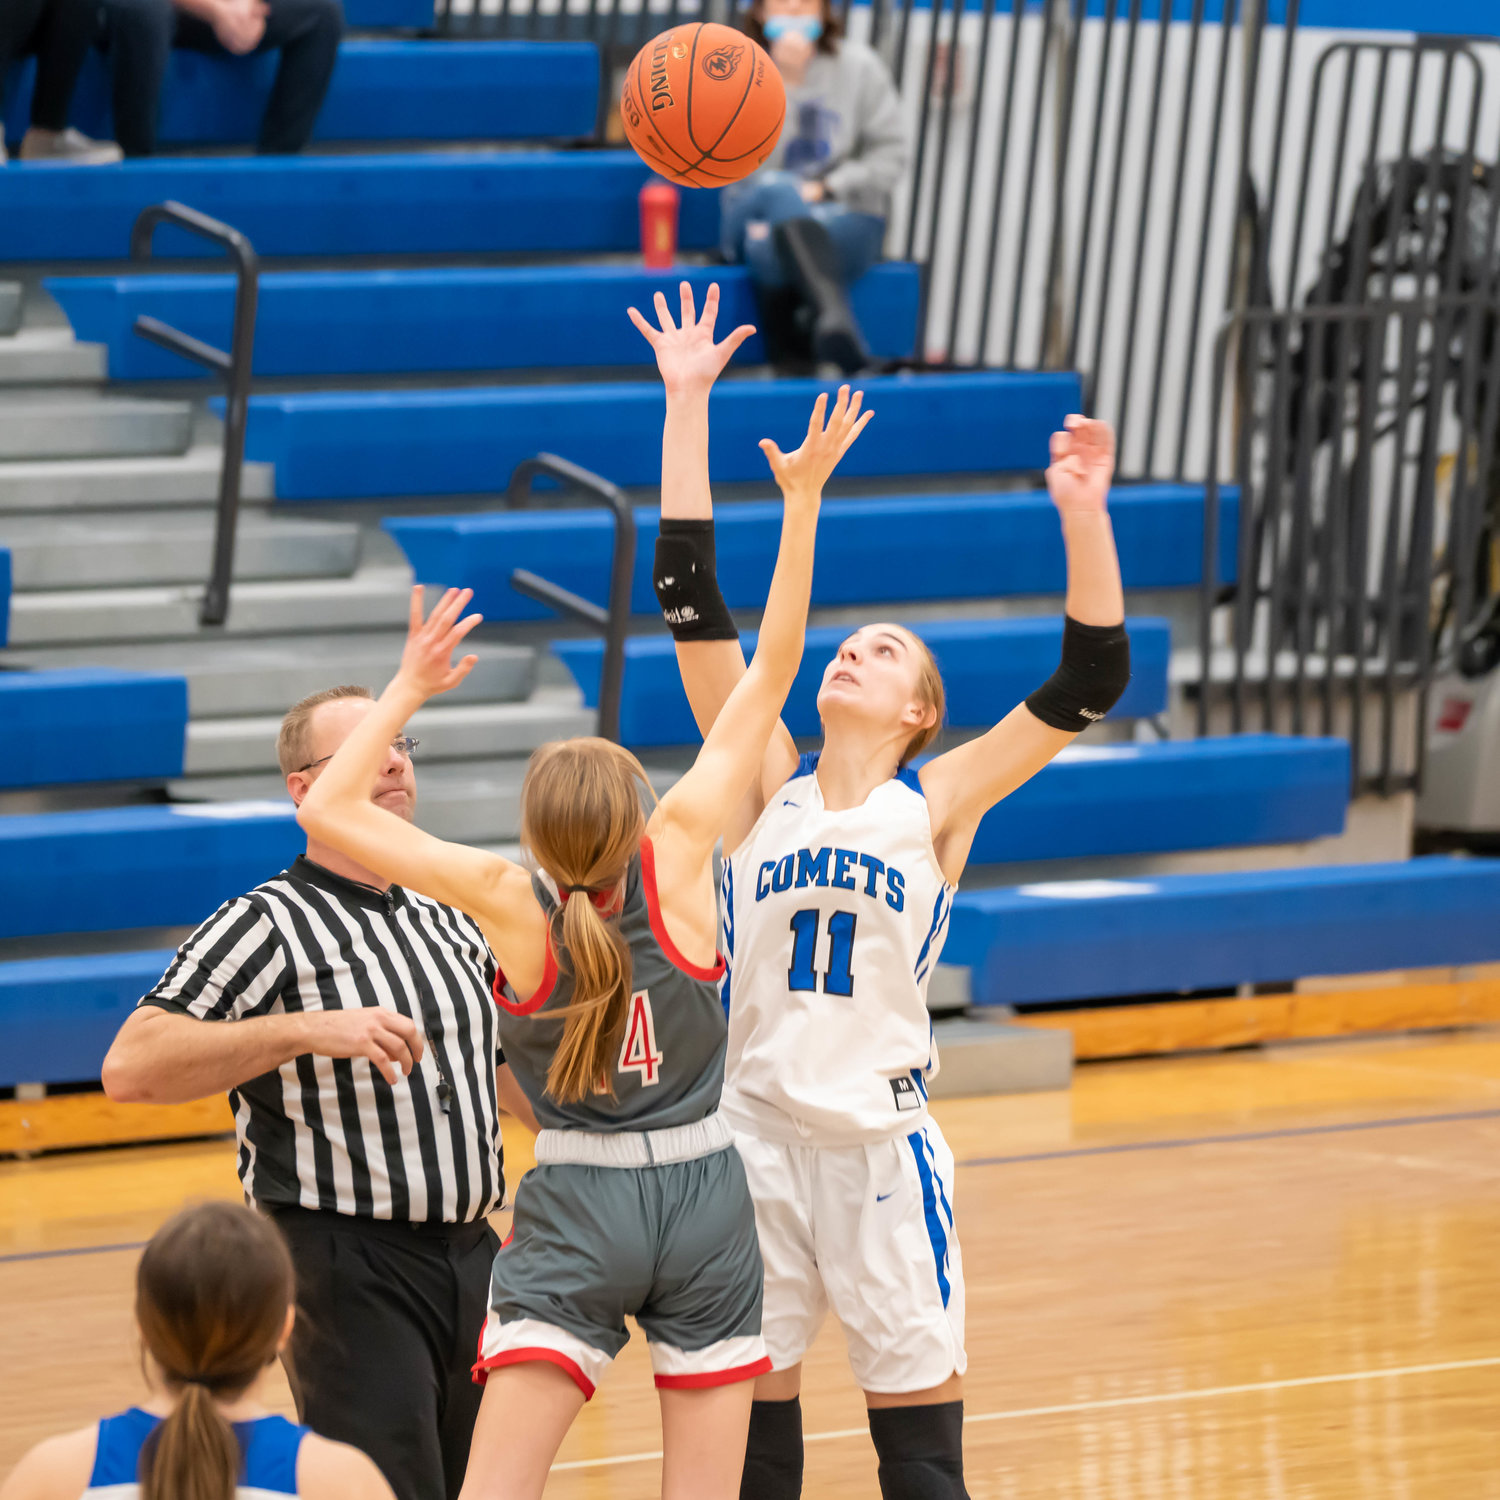 Macy Daufeldt goes up for the opening tip against North Scott.